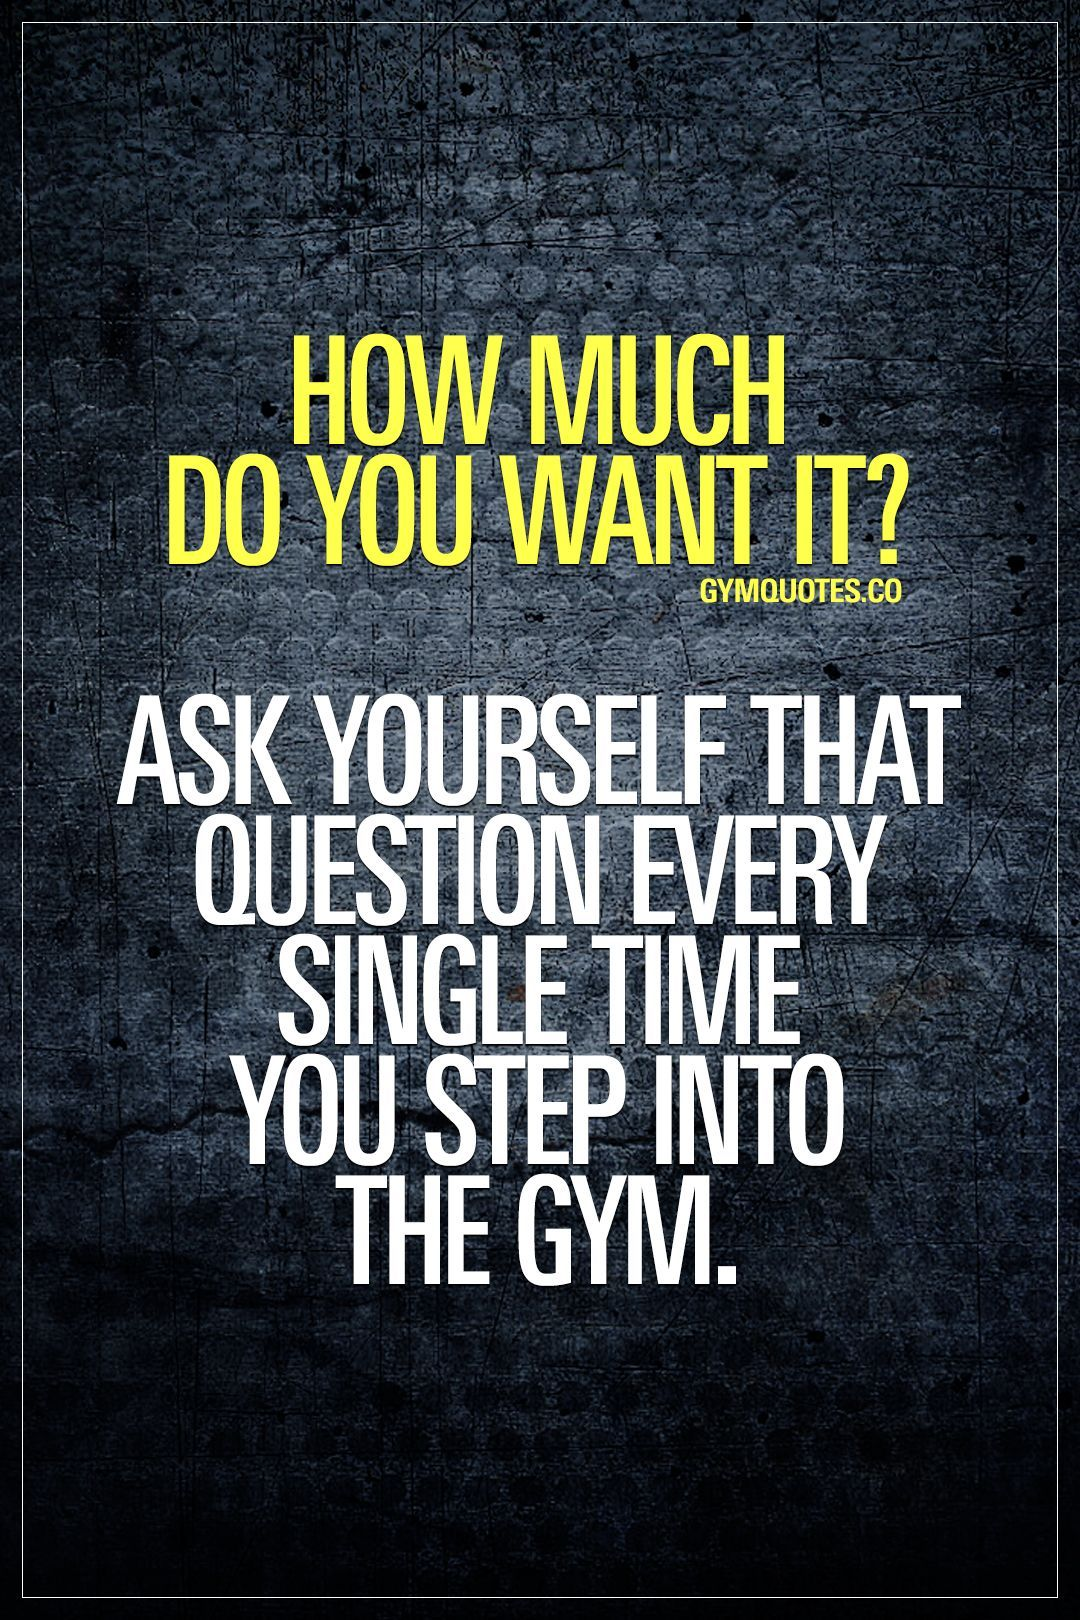 Workout Motivational Quotes For Her